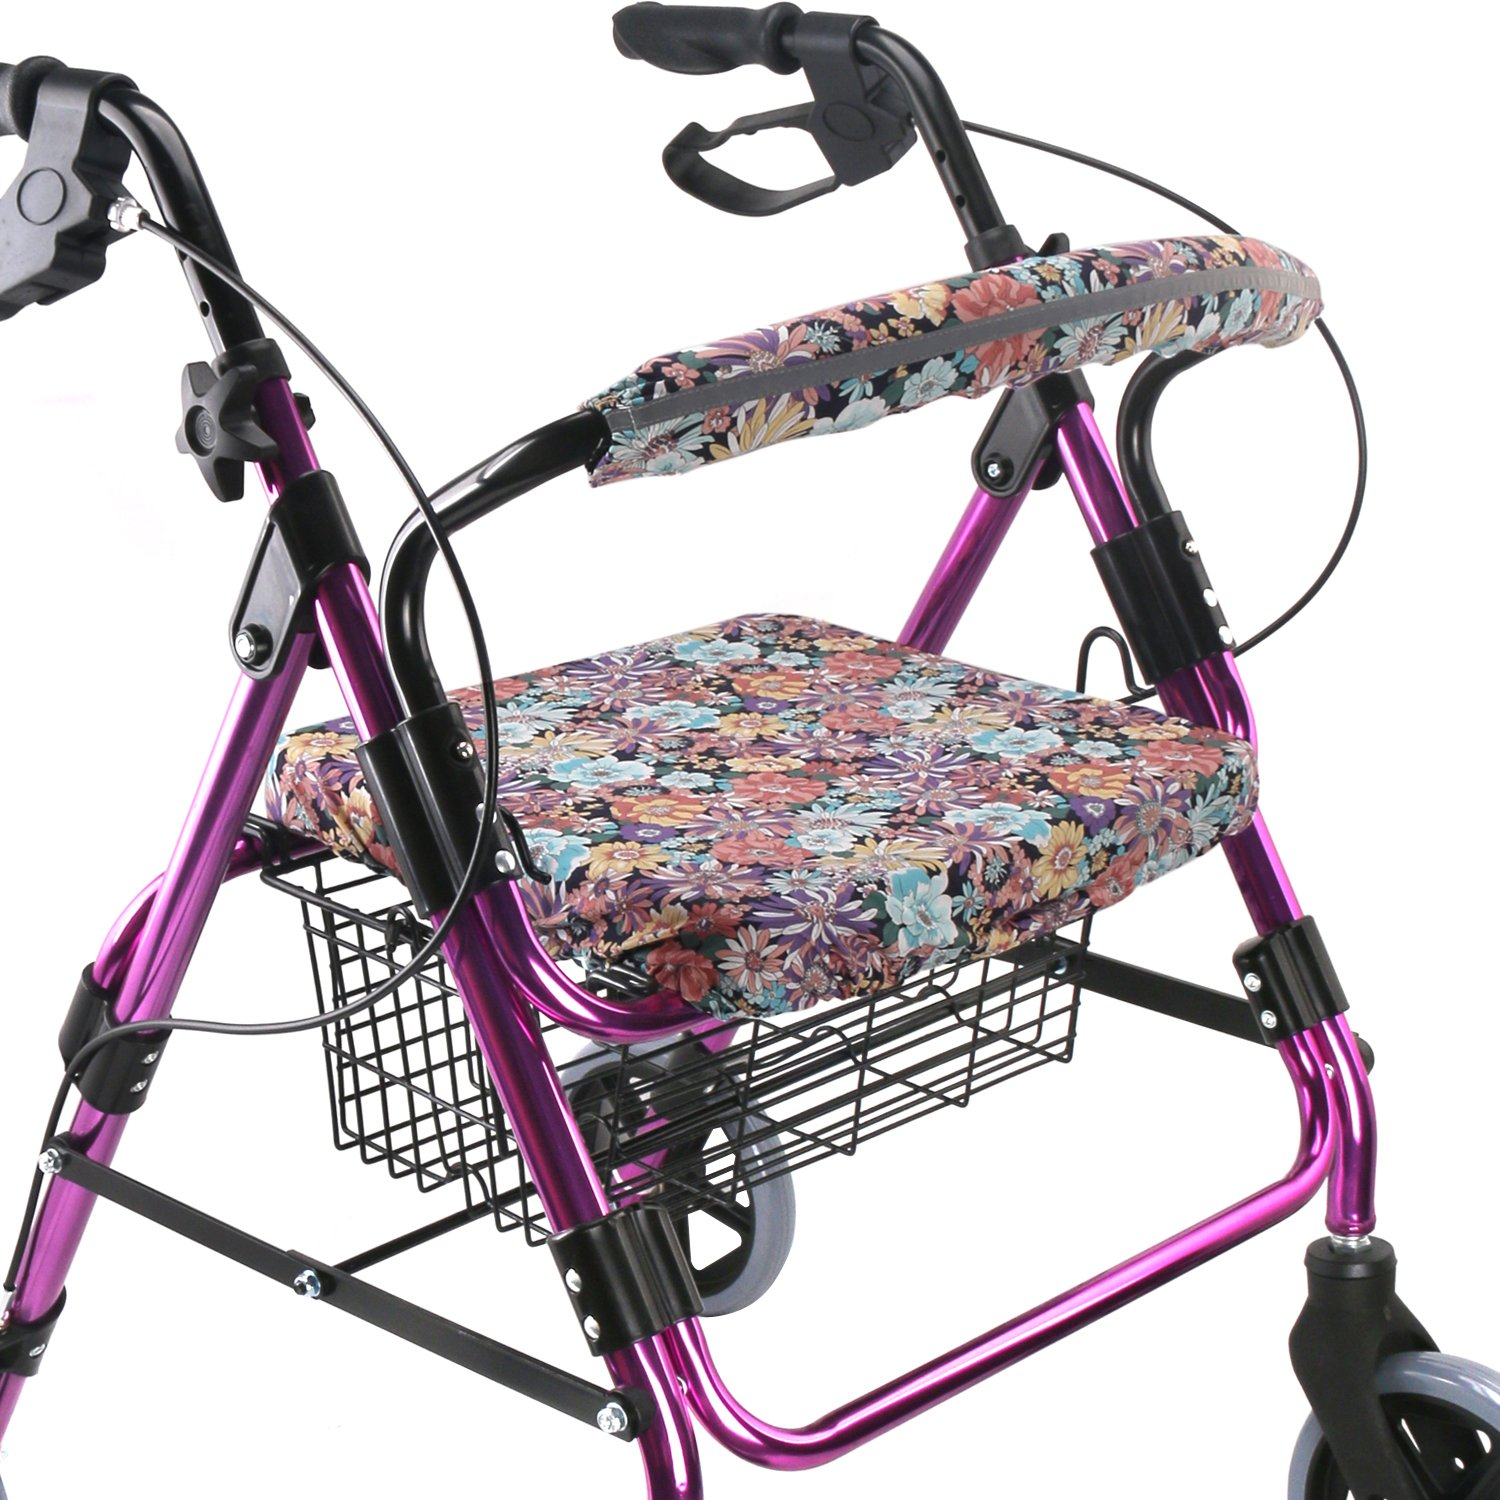 Walker Seat Cover Rollator Walker Seat and Backrest Covers Vibrant Walker Cover One Size Multiple Colors (CB1884) TOMMHANES AMISGUOER